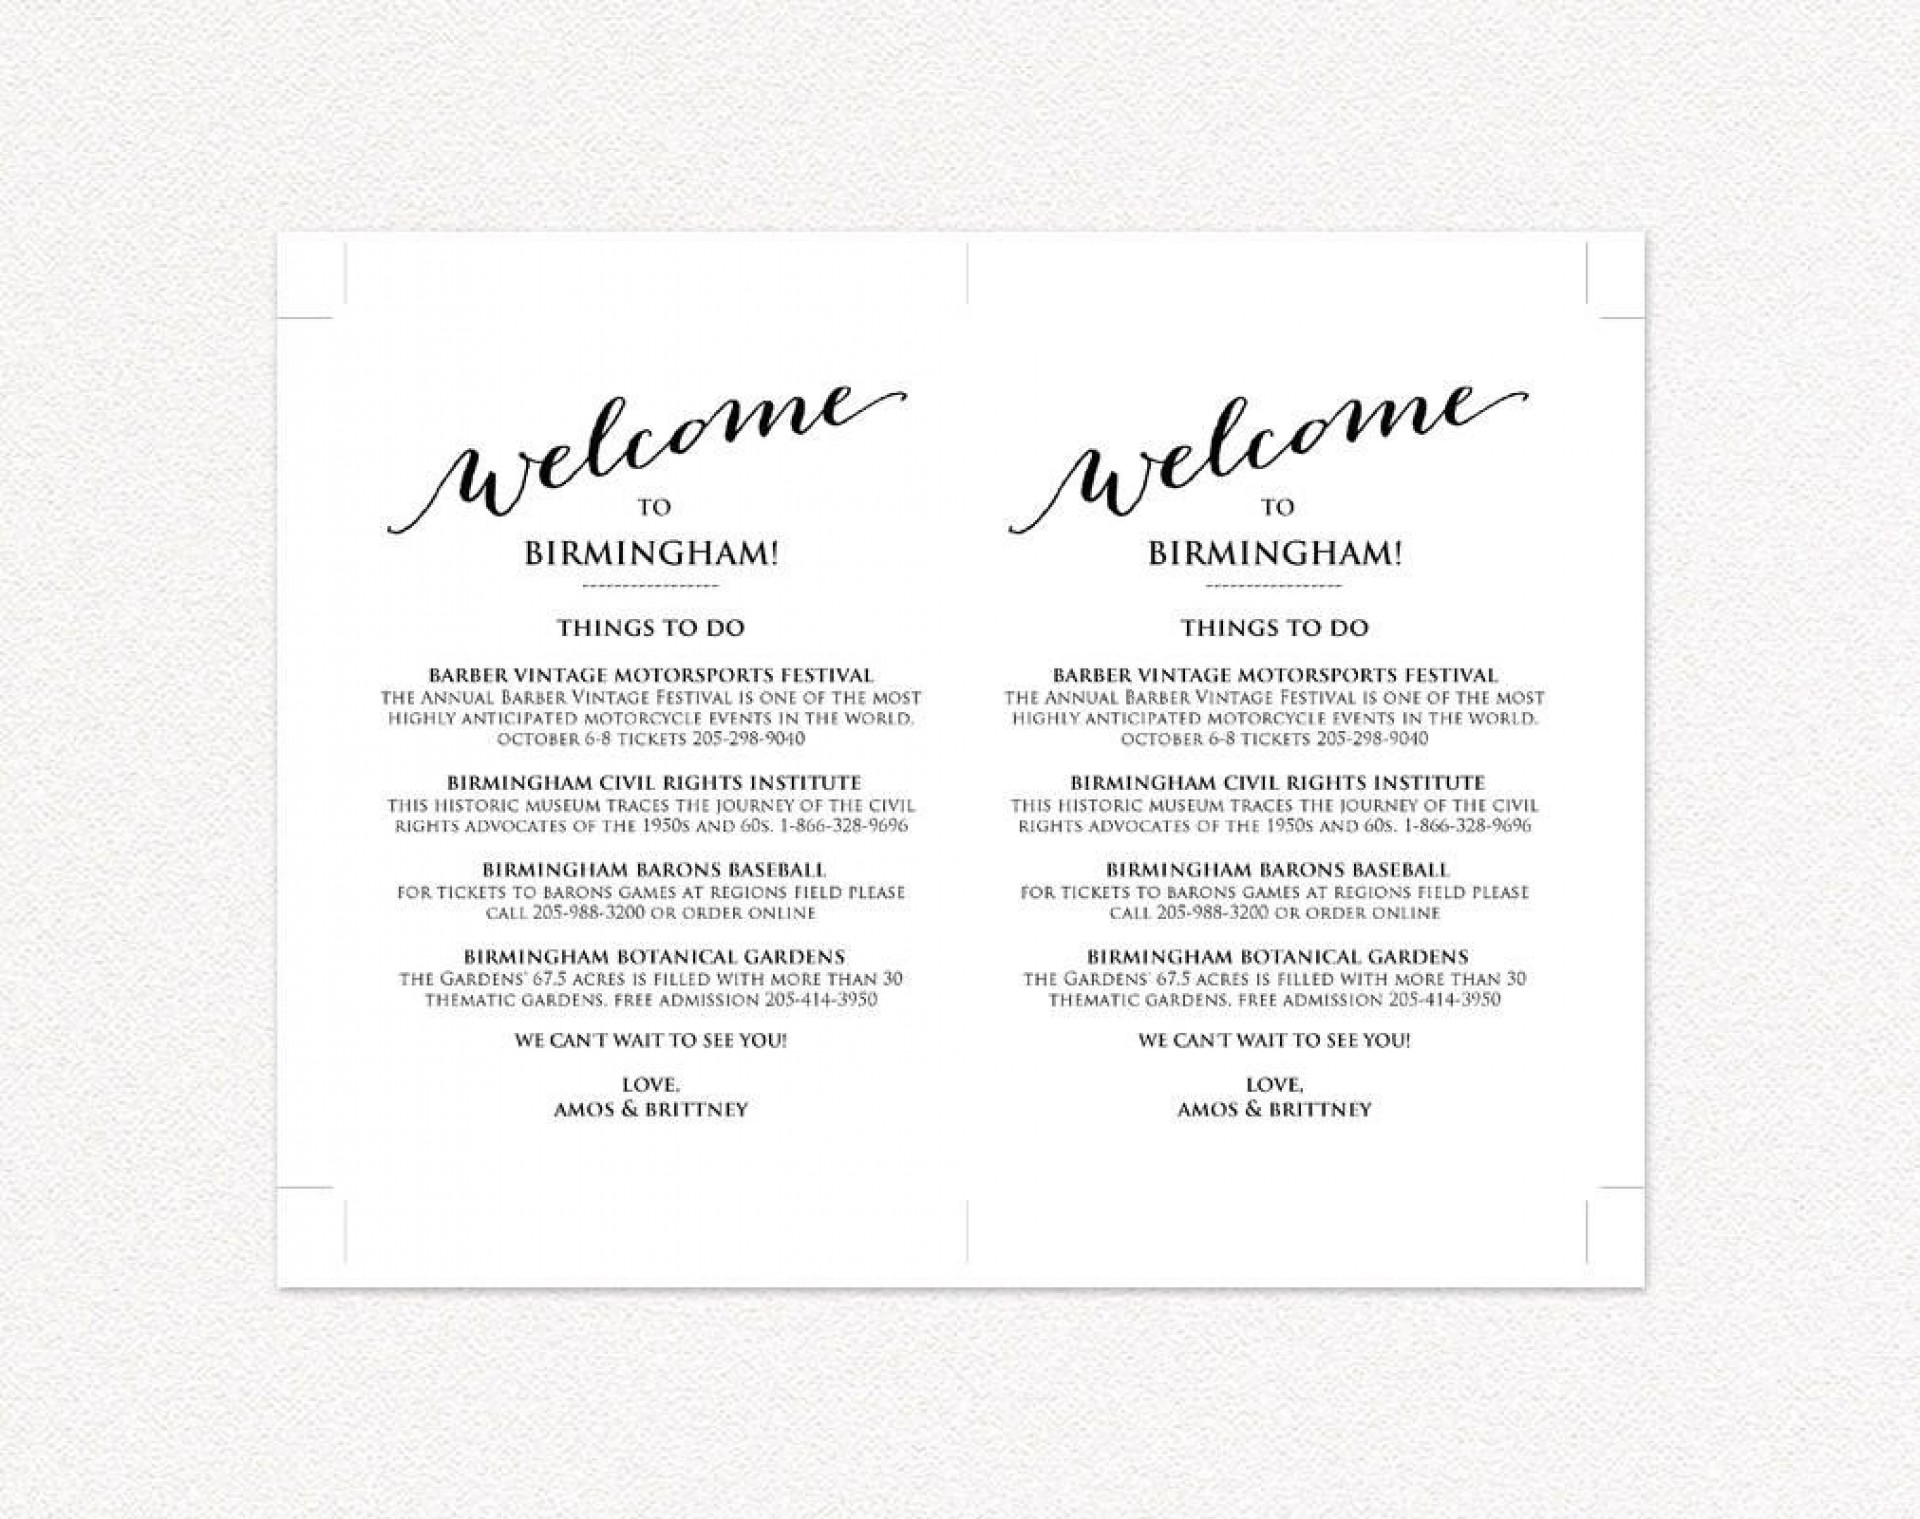 009 Excellent Wedding Weekend Itinerary Template Highest Clarity  Day Word Reception Timeline Excel1920